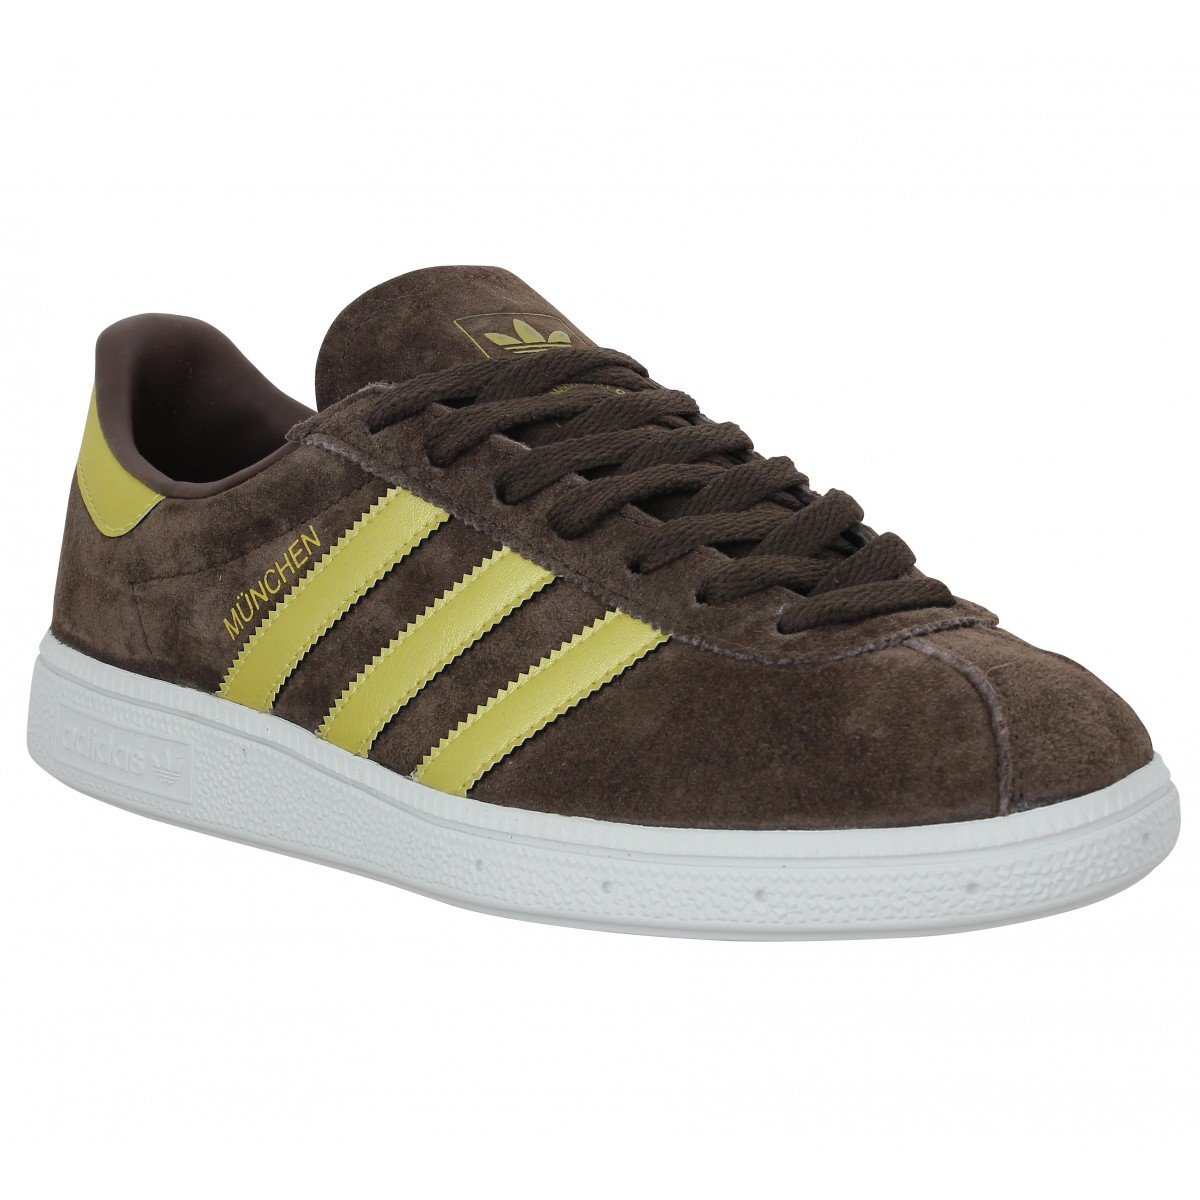 Baskets ADIDAS Munchen velours Homme Marron